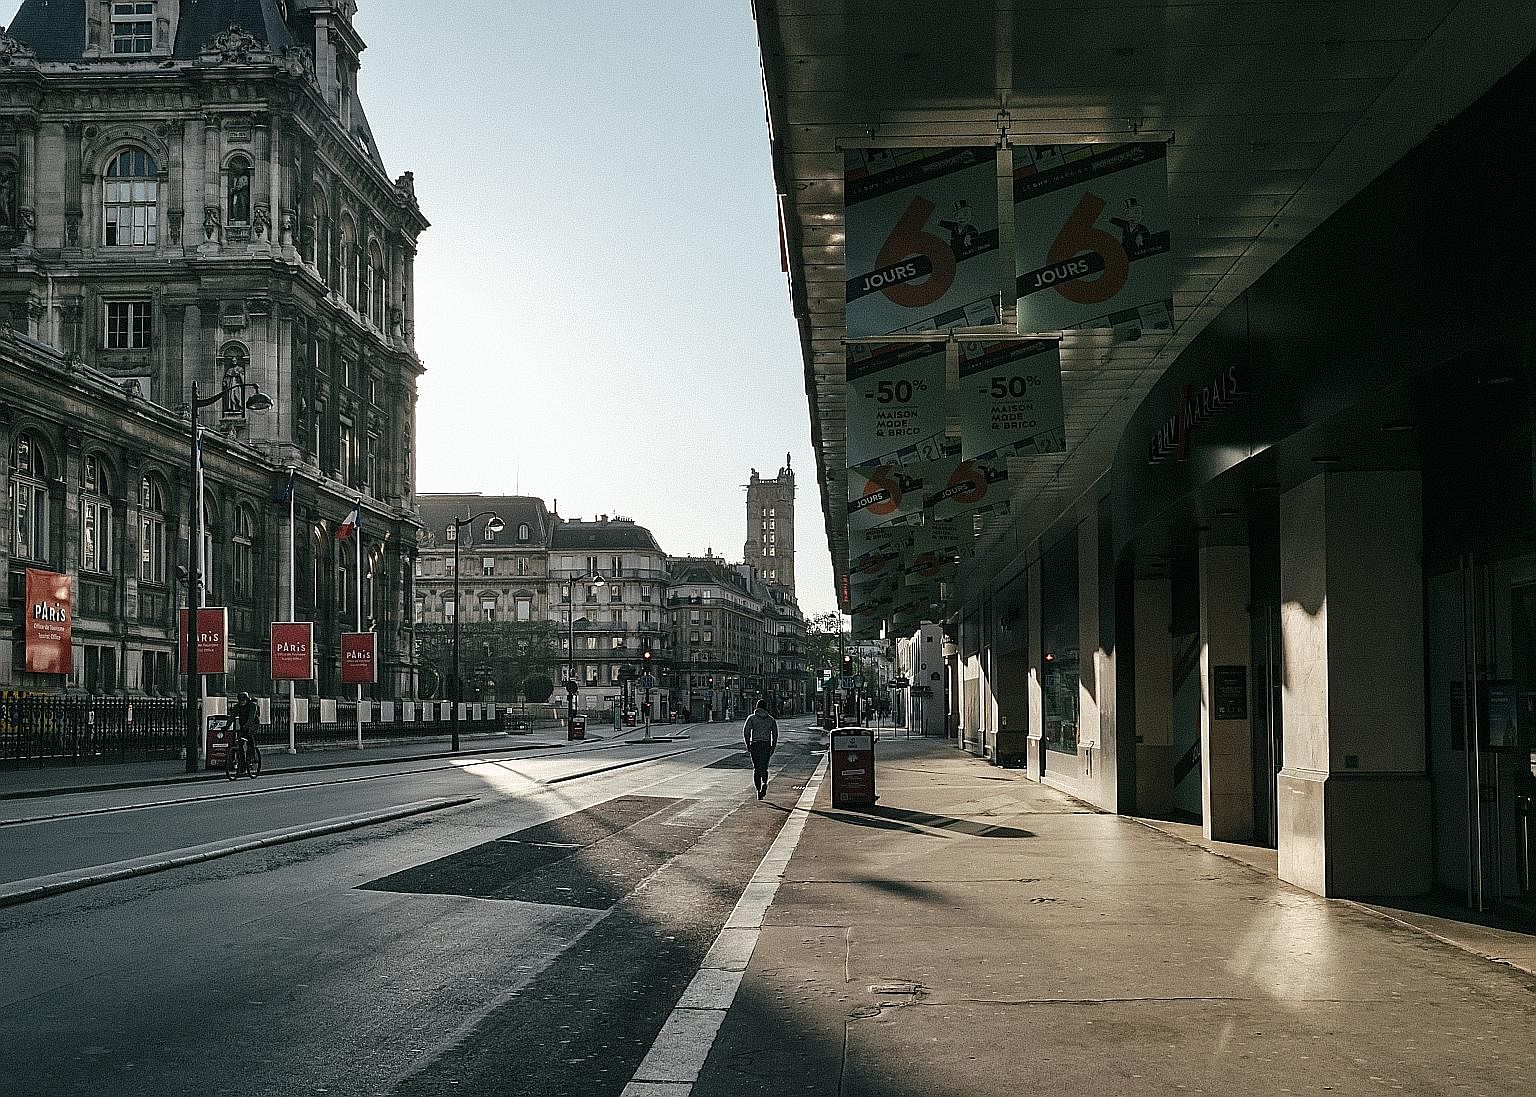 An empty street in Paris on Monday. One answer is not to abandon the lockdowns before the death rate is brought under control, says the writer. It will be impossible to reopen economies with a raging epidemic, increasing numbers of dead and pushing h